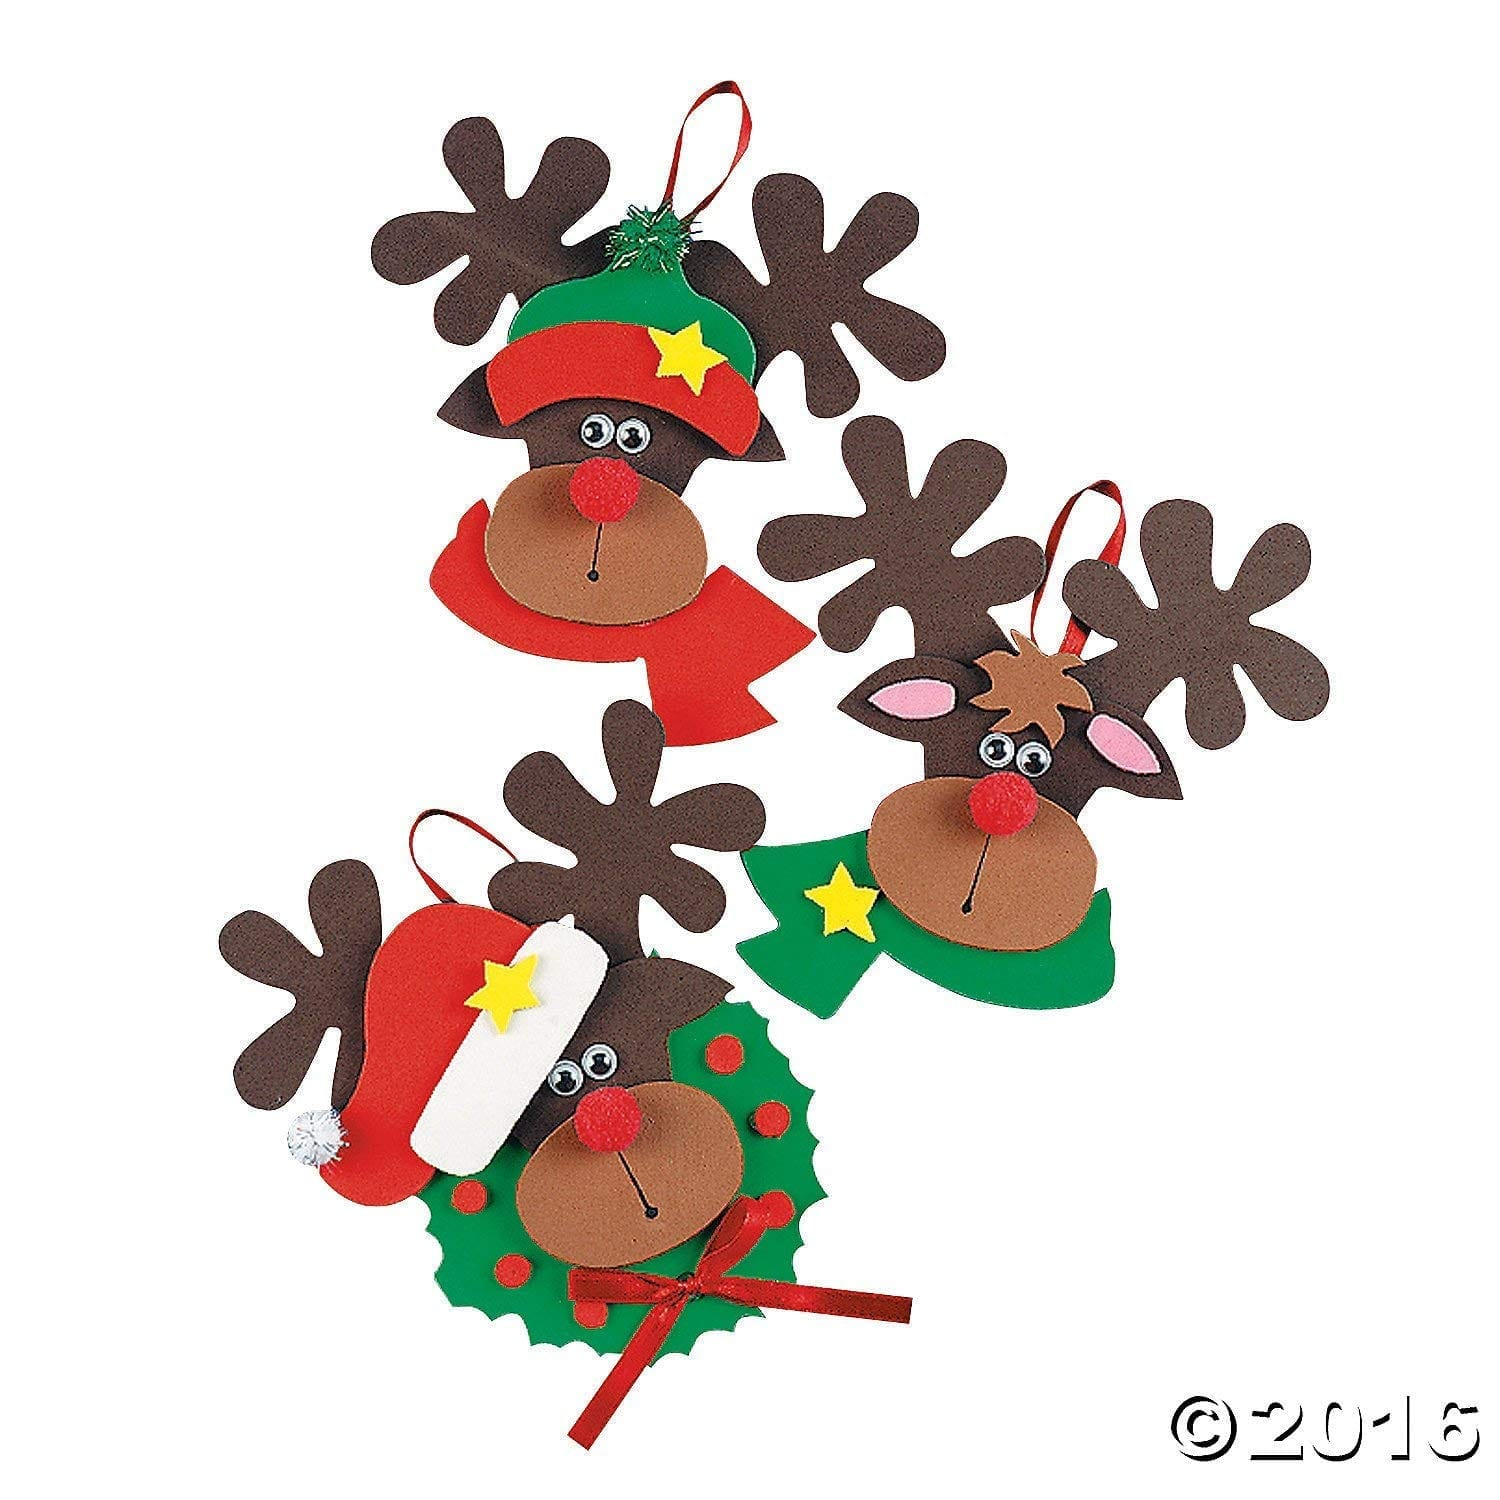 Foam Reindeer Holiday Ornament Craft Kit